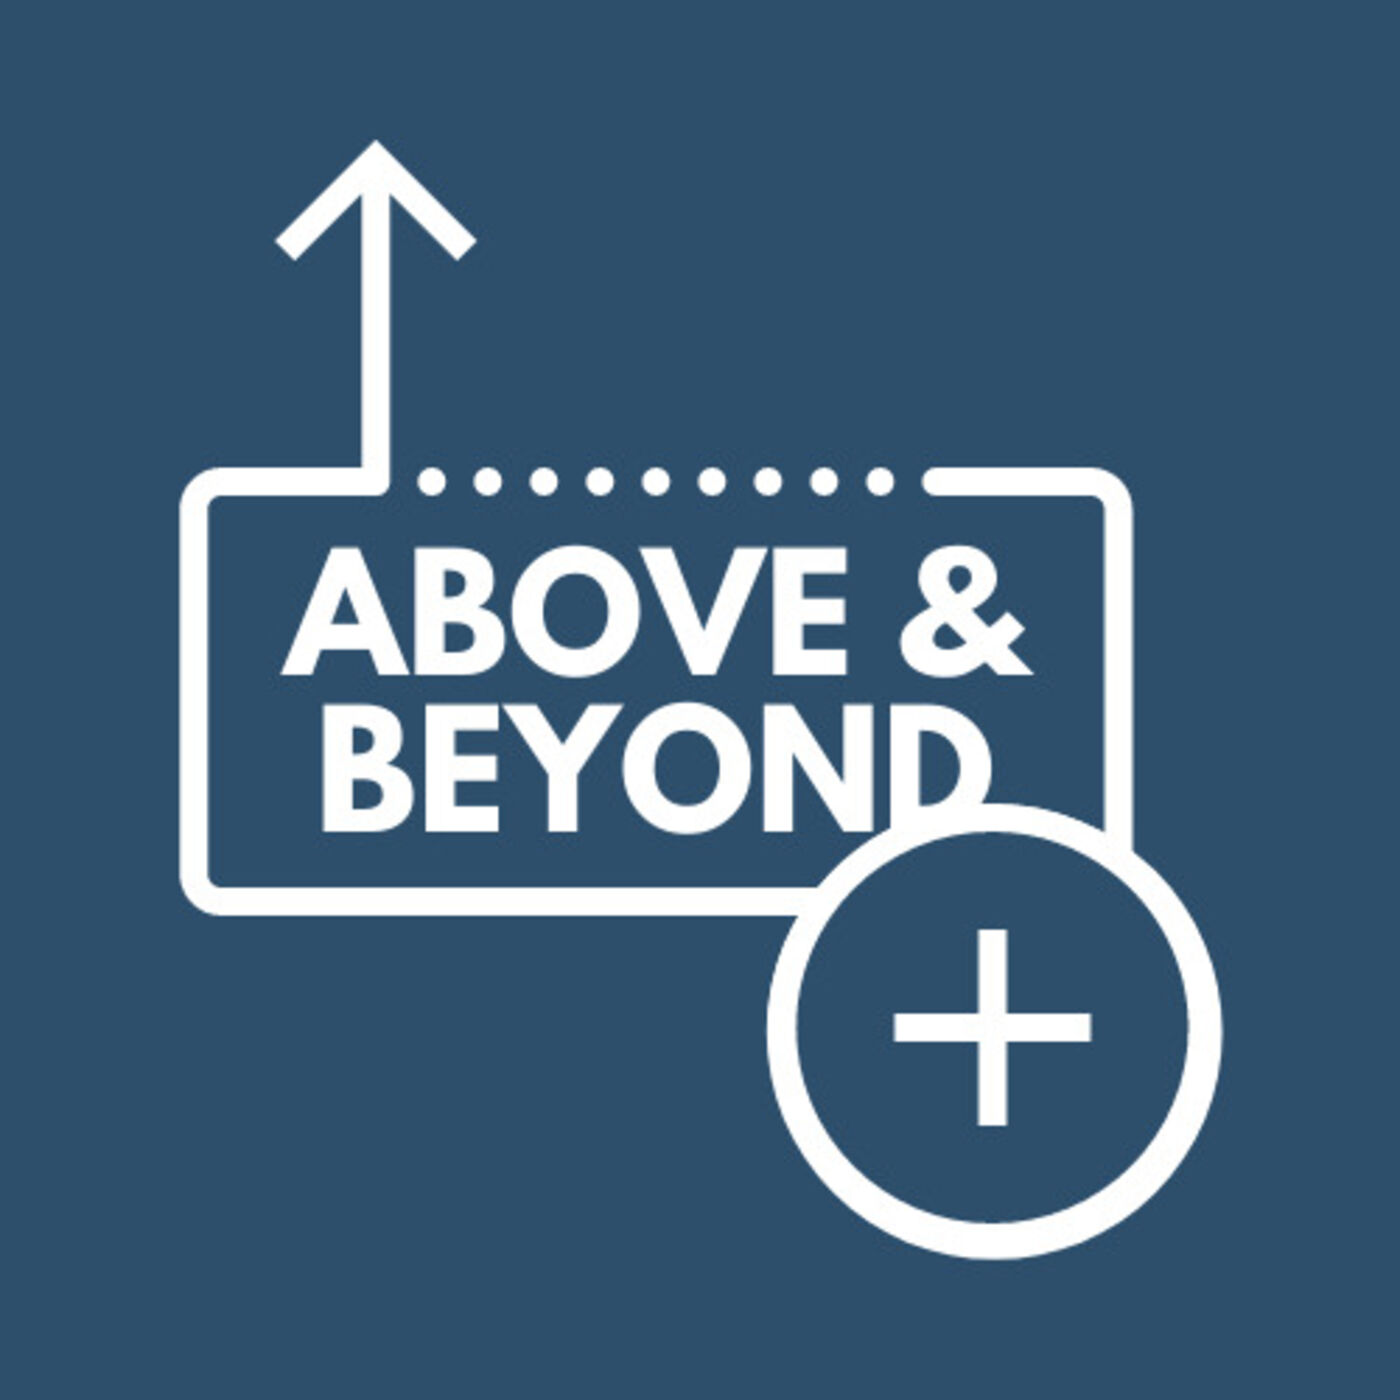 Above & Beyond | The State of the Church Message